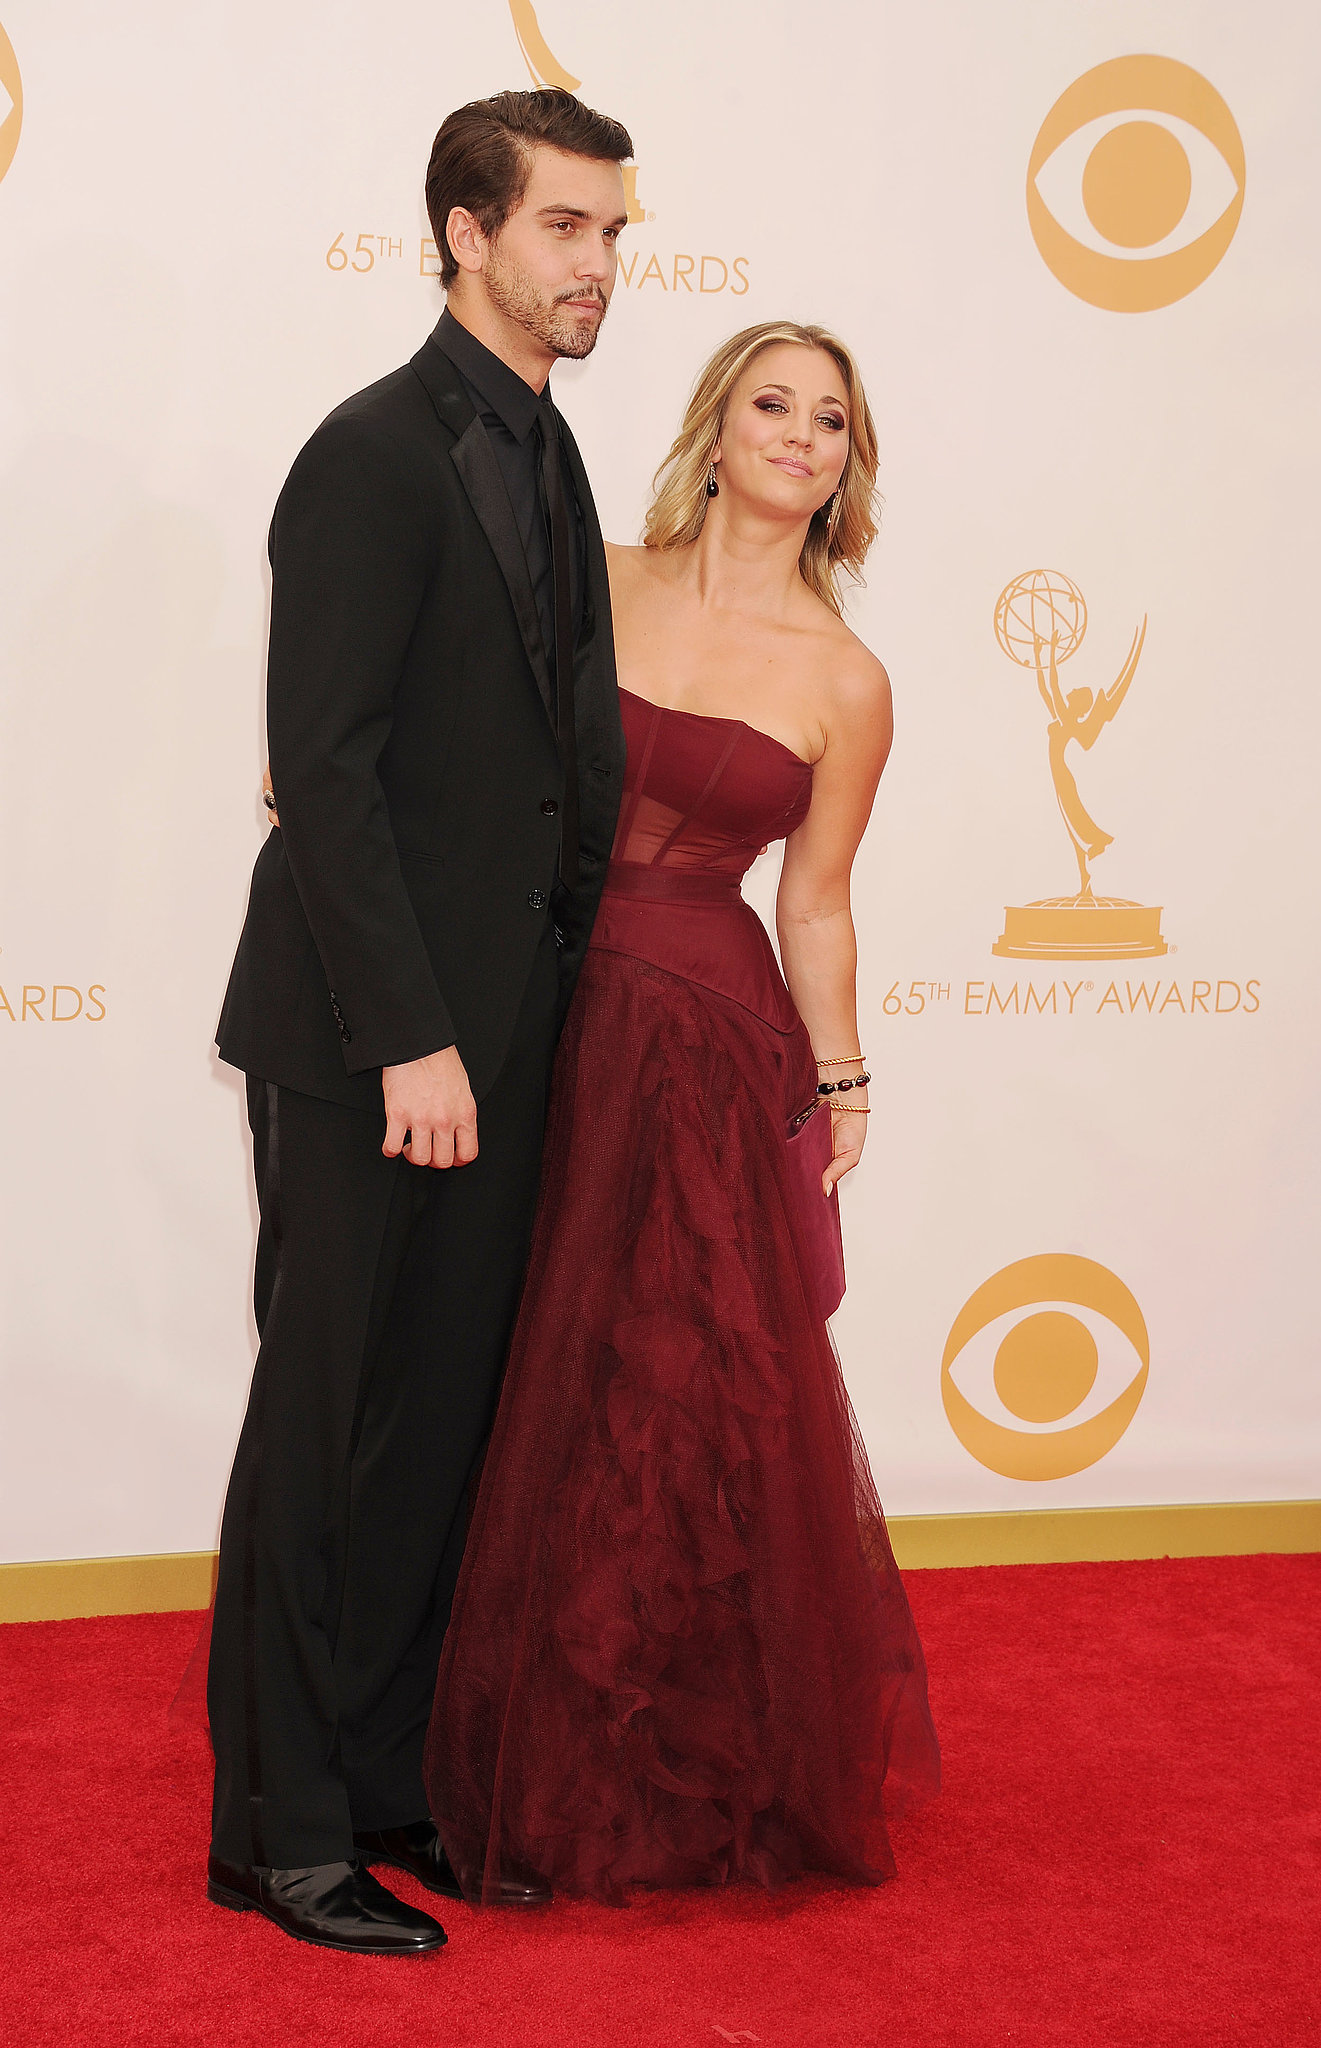 Kaley Cuoco and boyfriend Ryan Sweeting made a cute couple on the carpet.